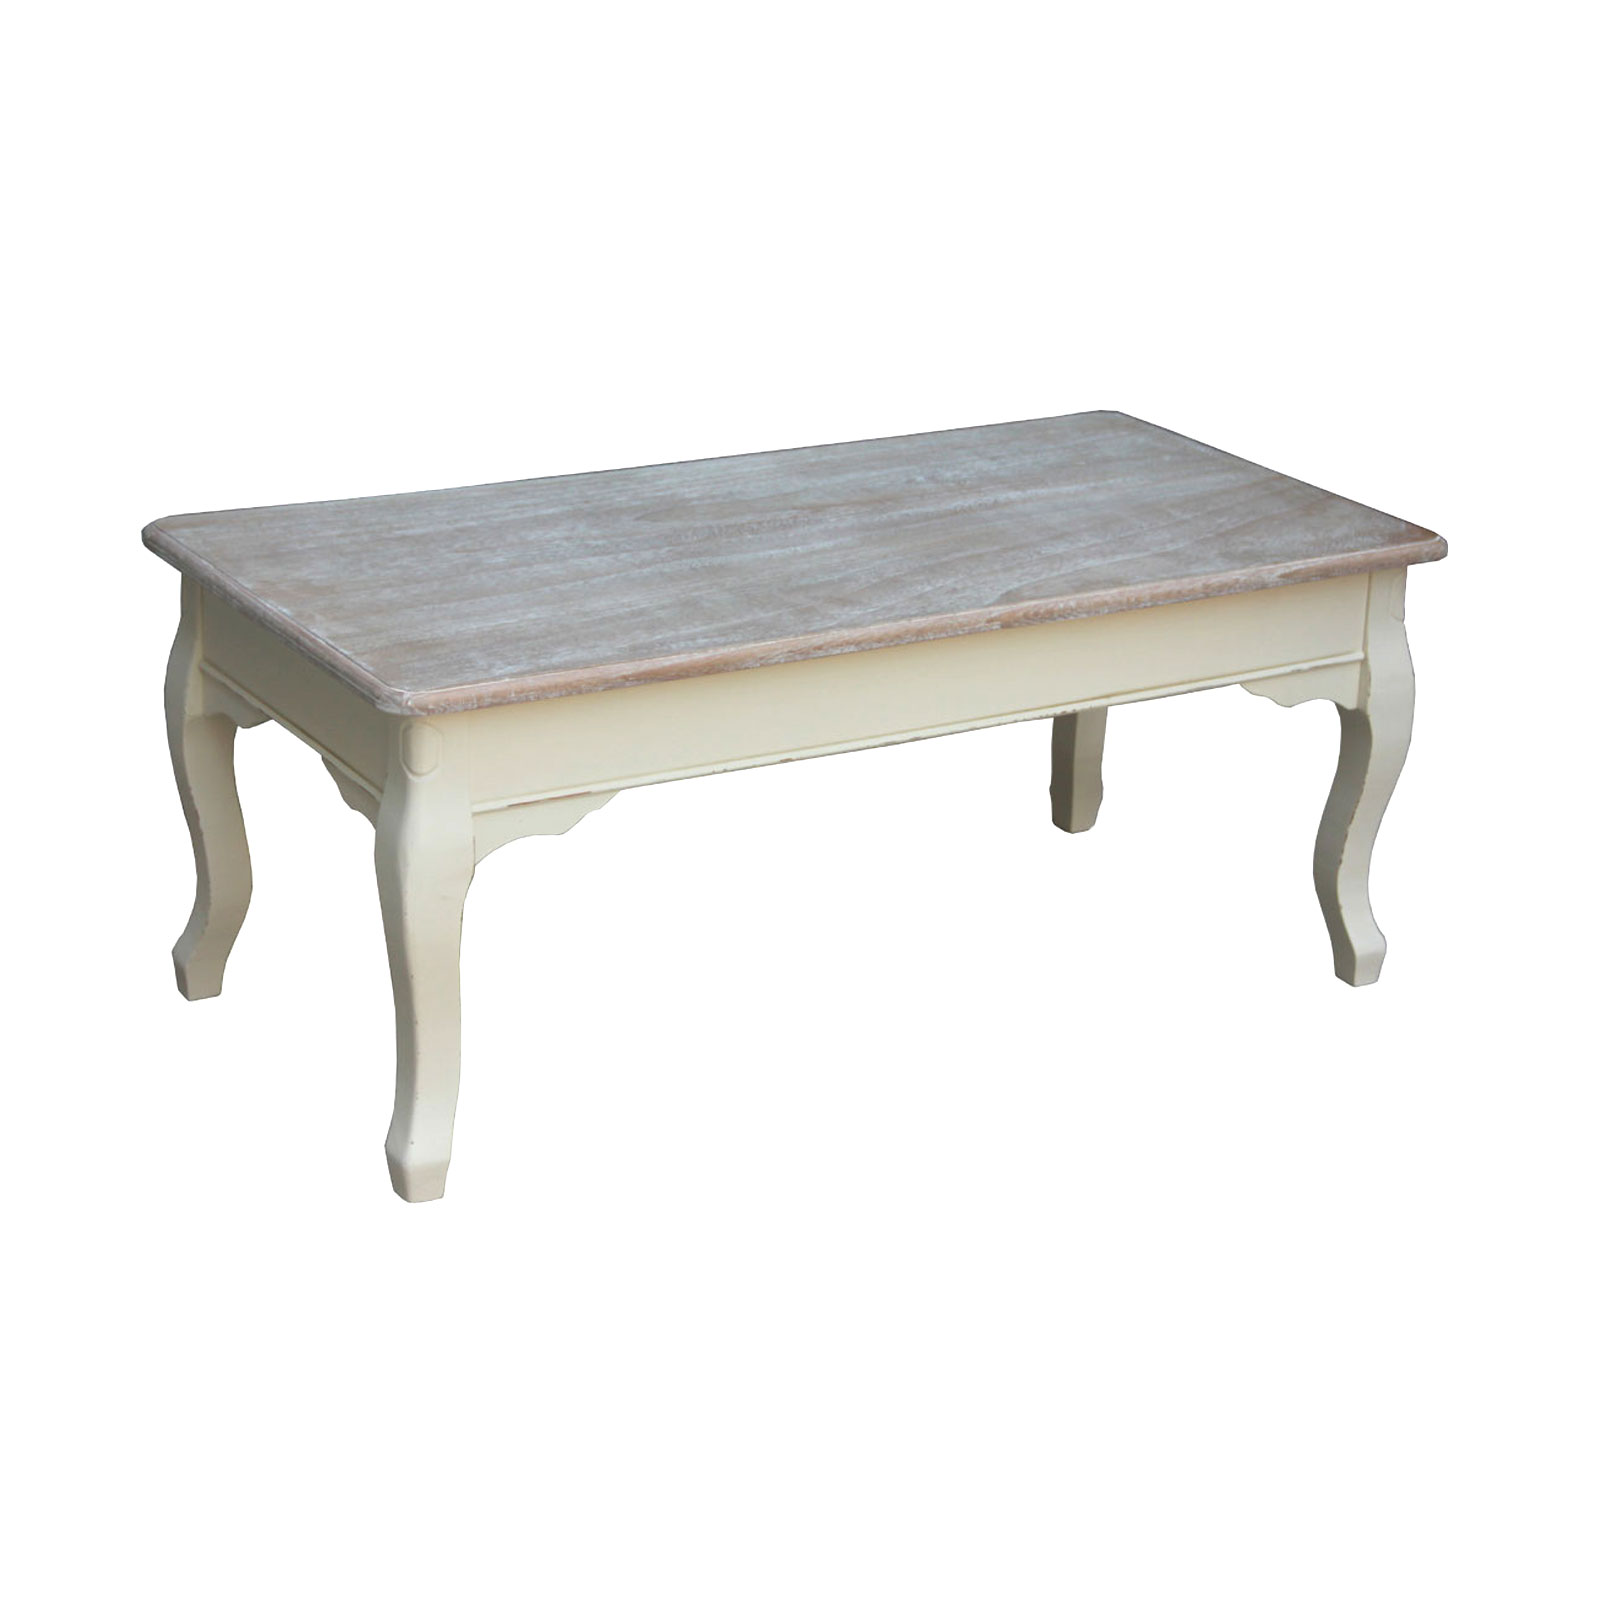 charles bentley cream maison vintage coffee table wooden